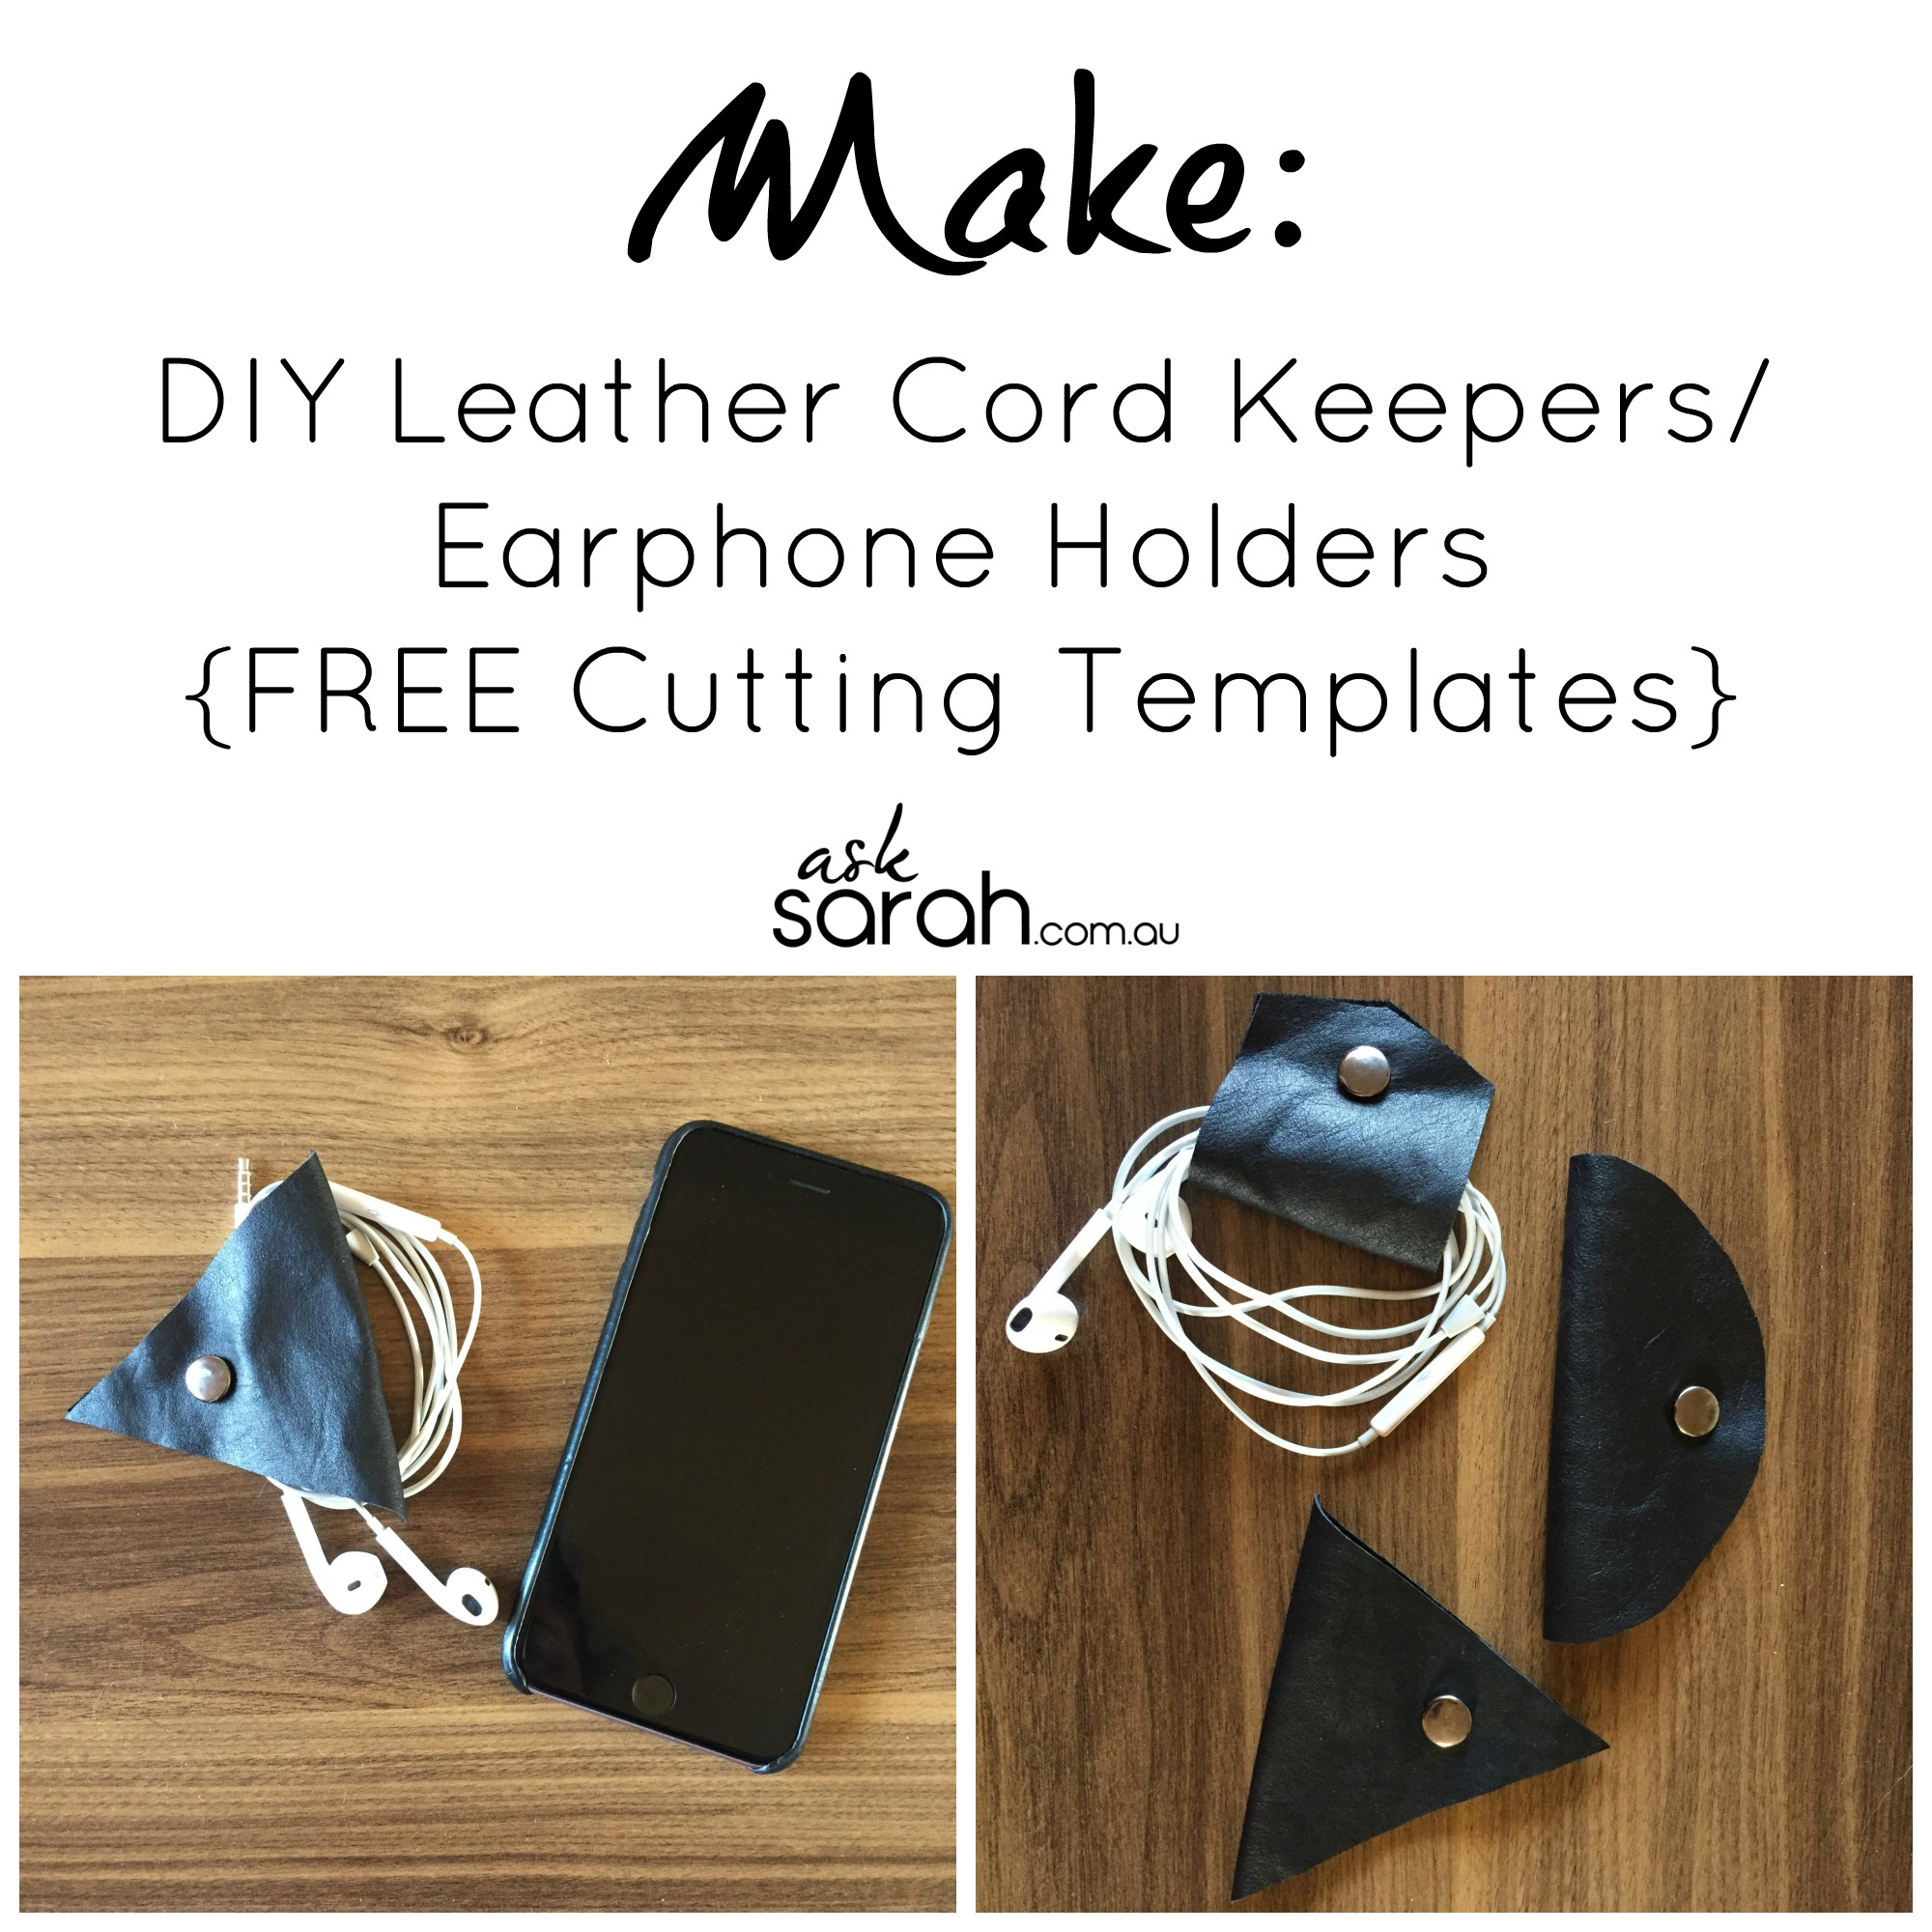 Make: DIY Leather Cord Keepers/Earphone Holders {FREE Cutting Templates}